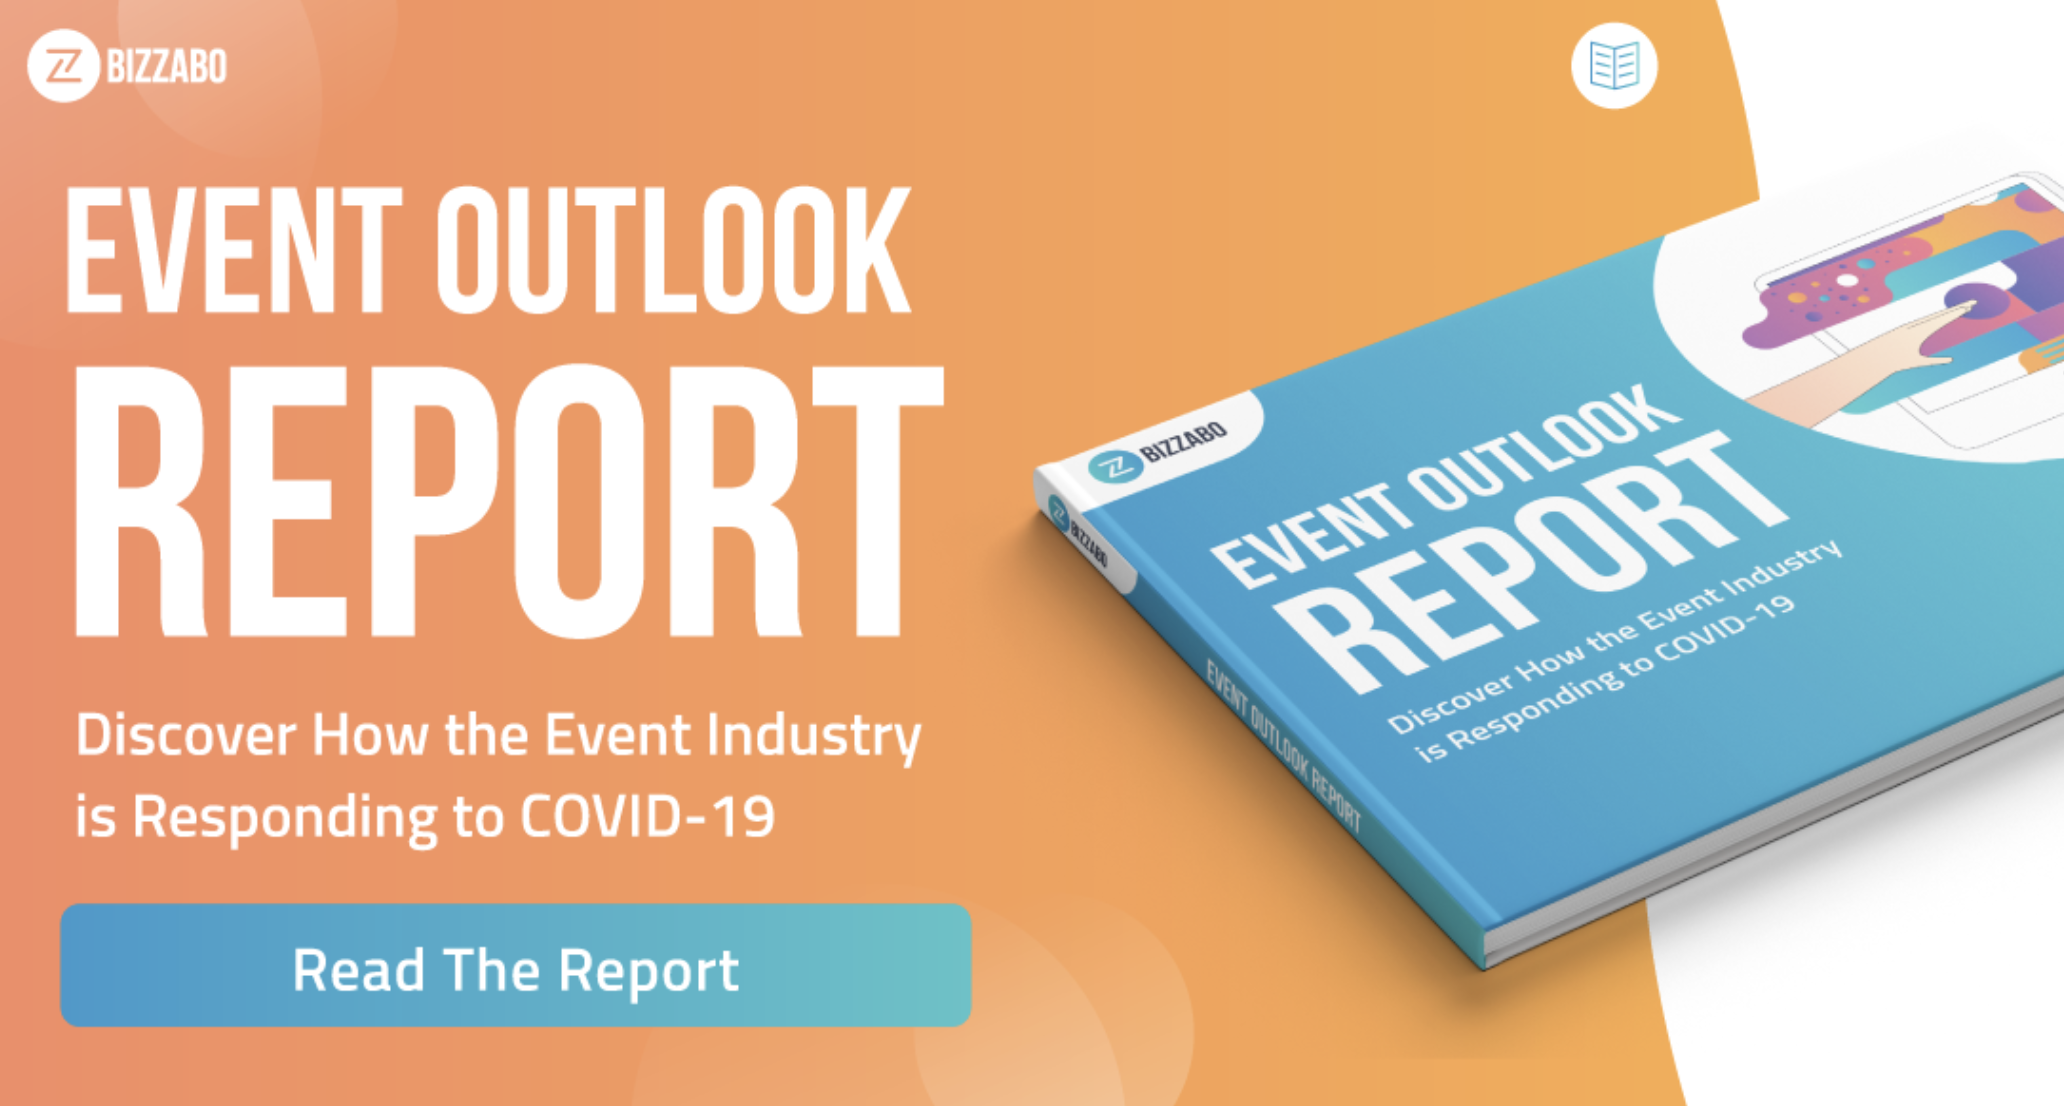 Event Outlook Survey - Read the Report